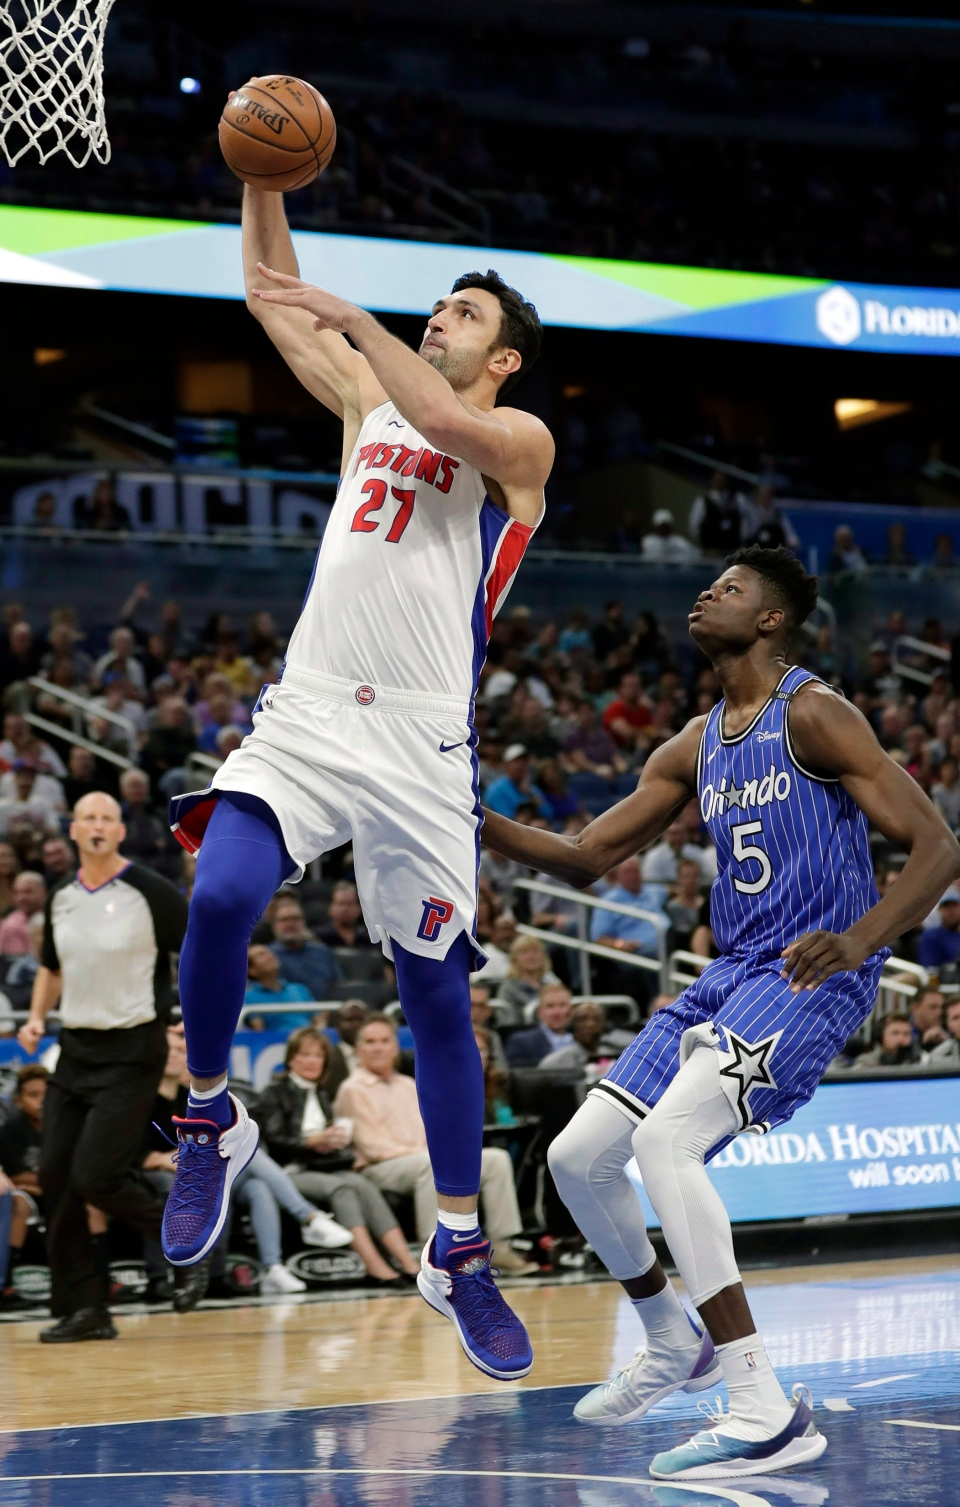 Detroit Pistons' Zaza Pachulia (27) goes past Orlando Magic's Mohamed Bamba (5) for a shot during the first half of an NBA basketball game, Wednesday, Nov. 7, 2018, in Orlando, Fla. (AP Photo/John Raoux)Special Instructions -